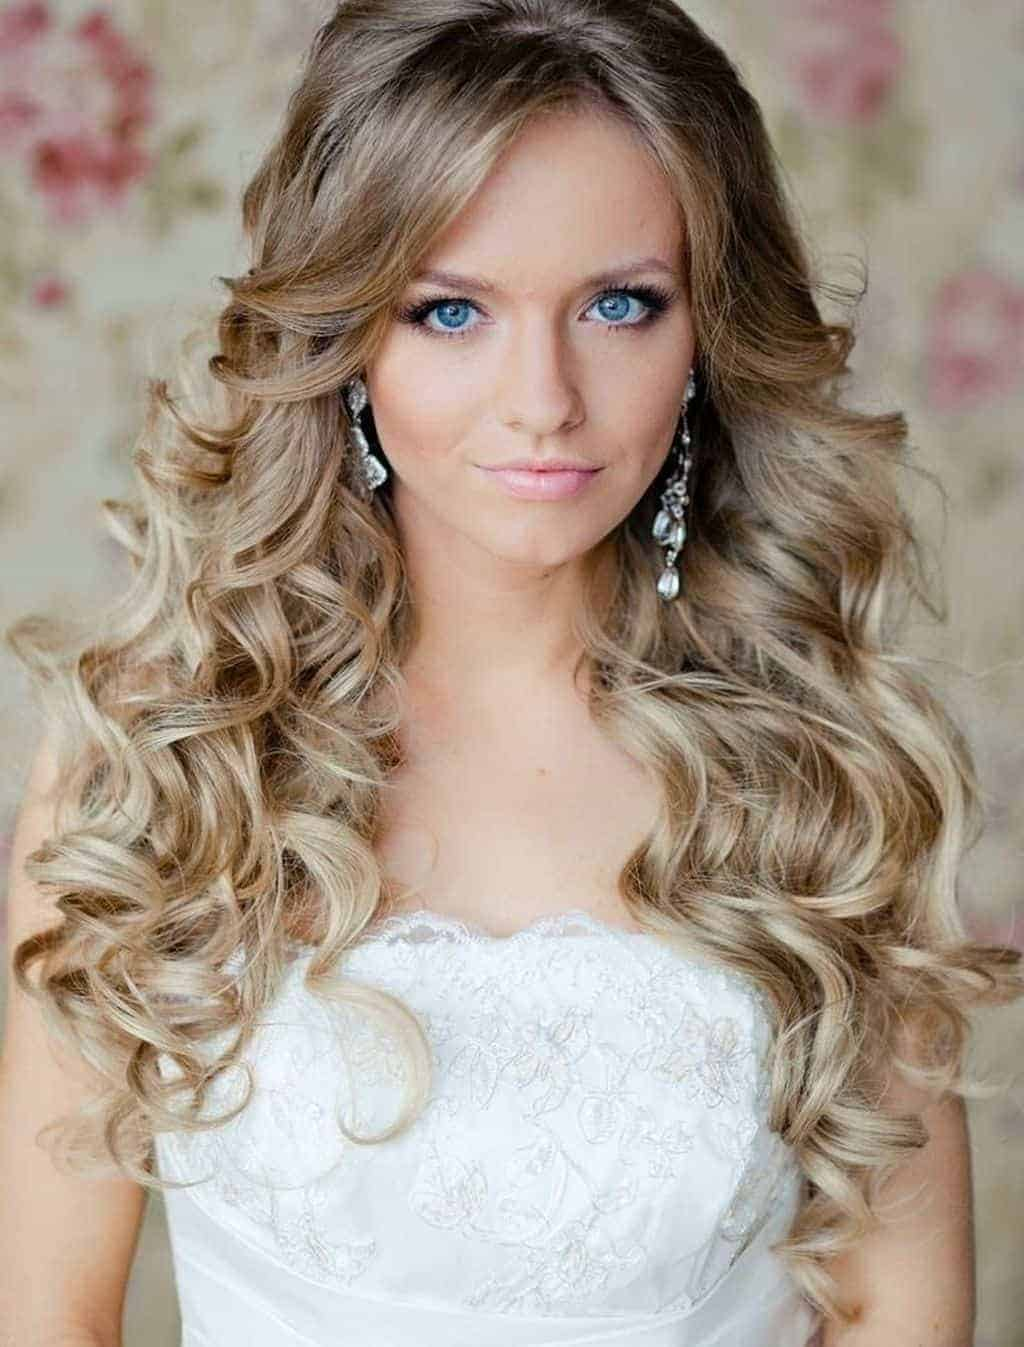 Hairstyles for long hair 2015 wedding